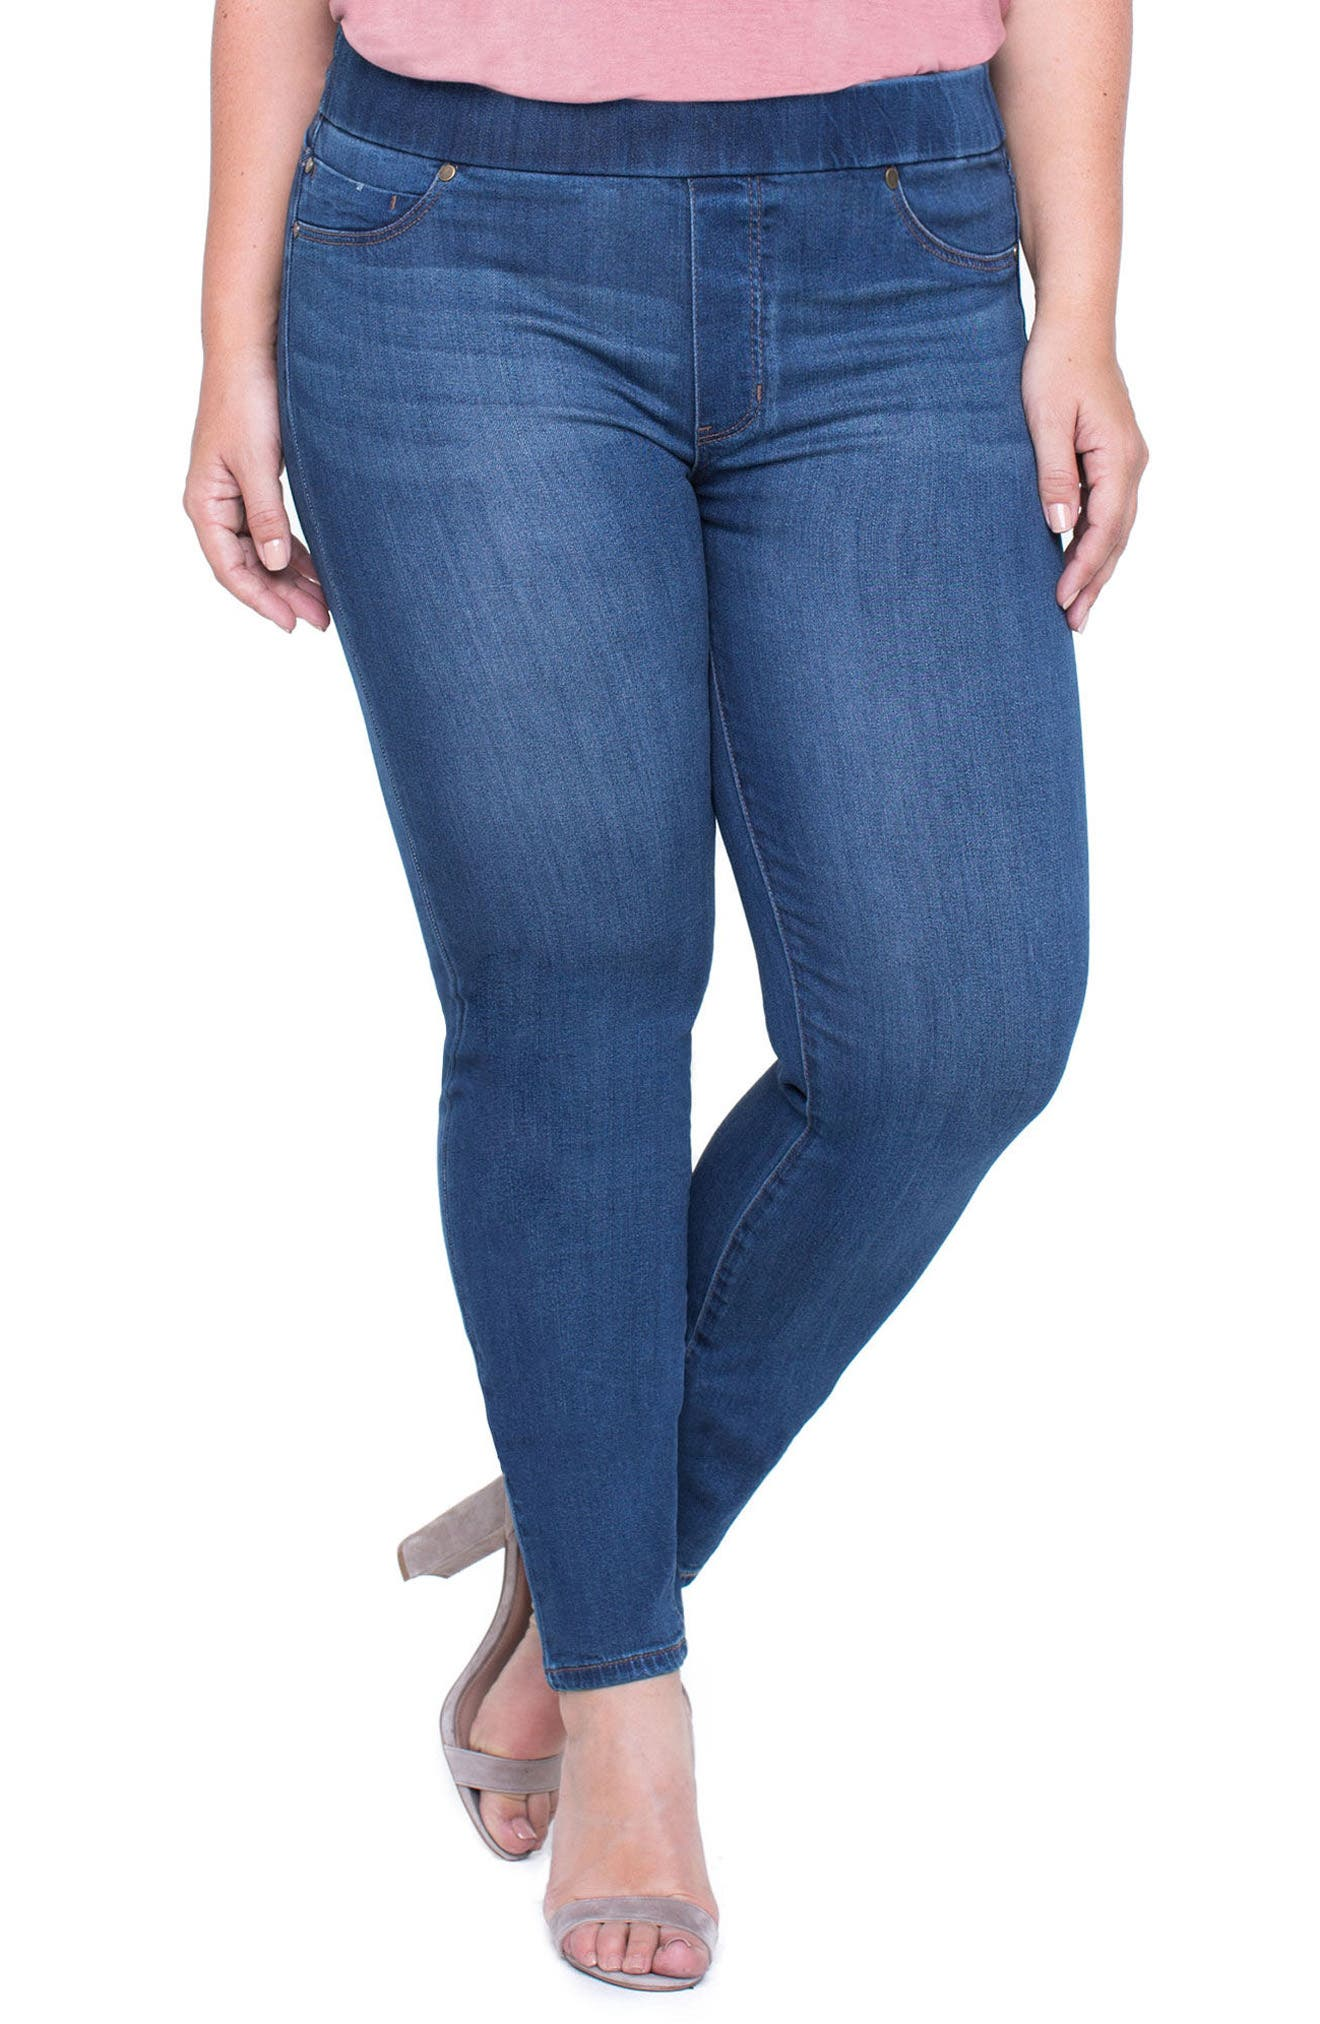 Alternate Image 1 Selected - Liverpool Jeans Company Sienna Knit Denim Leggings (Plus Size)